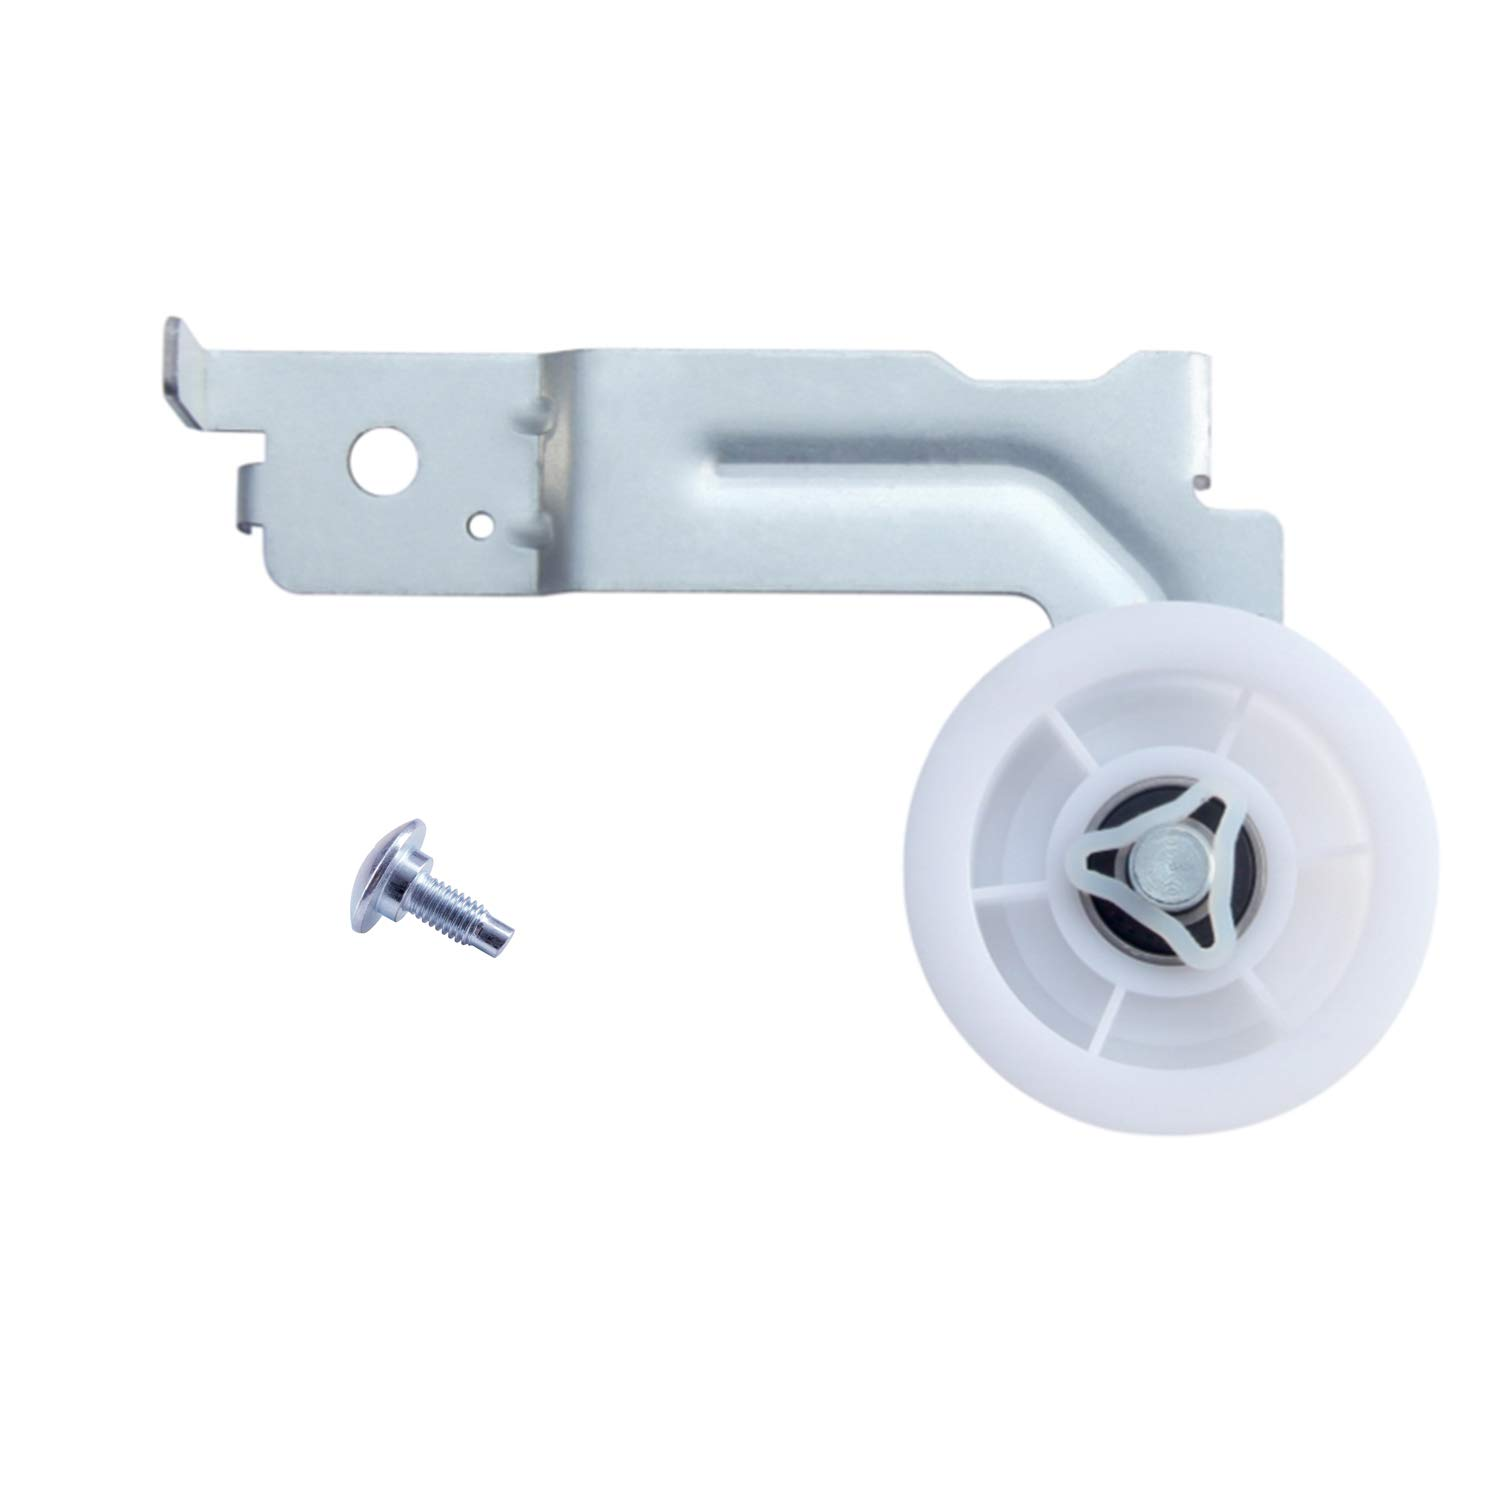 DC93-00634A Samsung Dryer Idler Pulley Replacement- Replaces Part Numbers DC96-00882B, DC96-00882C, DC97-07509B, AP6038887, AP4373659, AP4213616, PS4216837, PS11771601